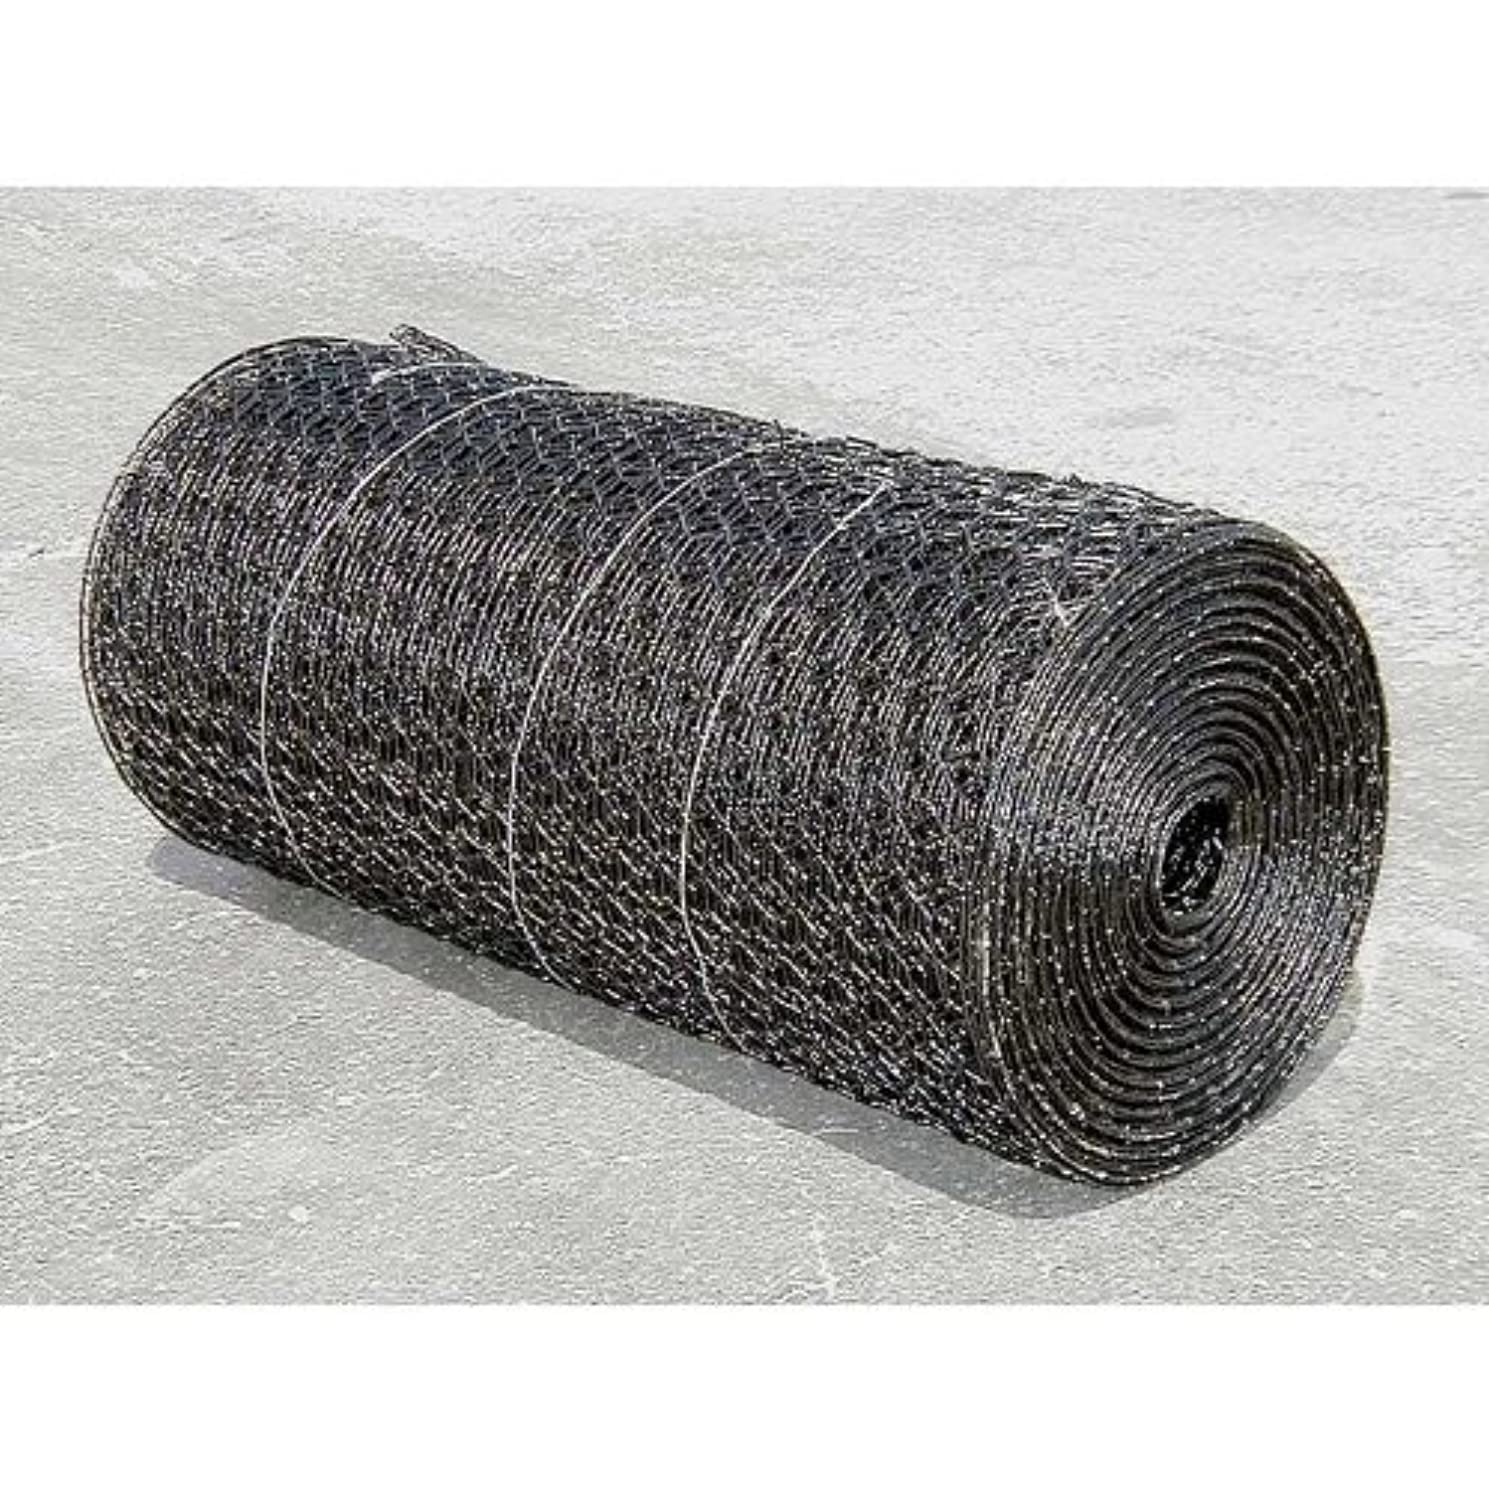 PVC Coated Hex Wire 7' High x 150' Long Roll